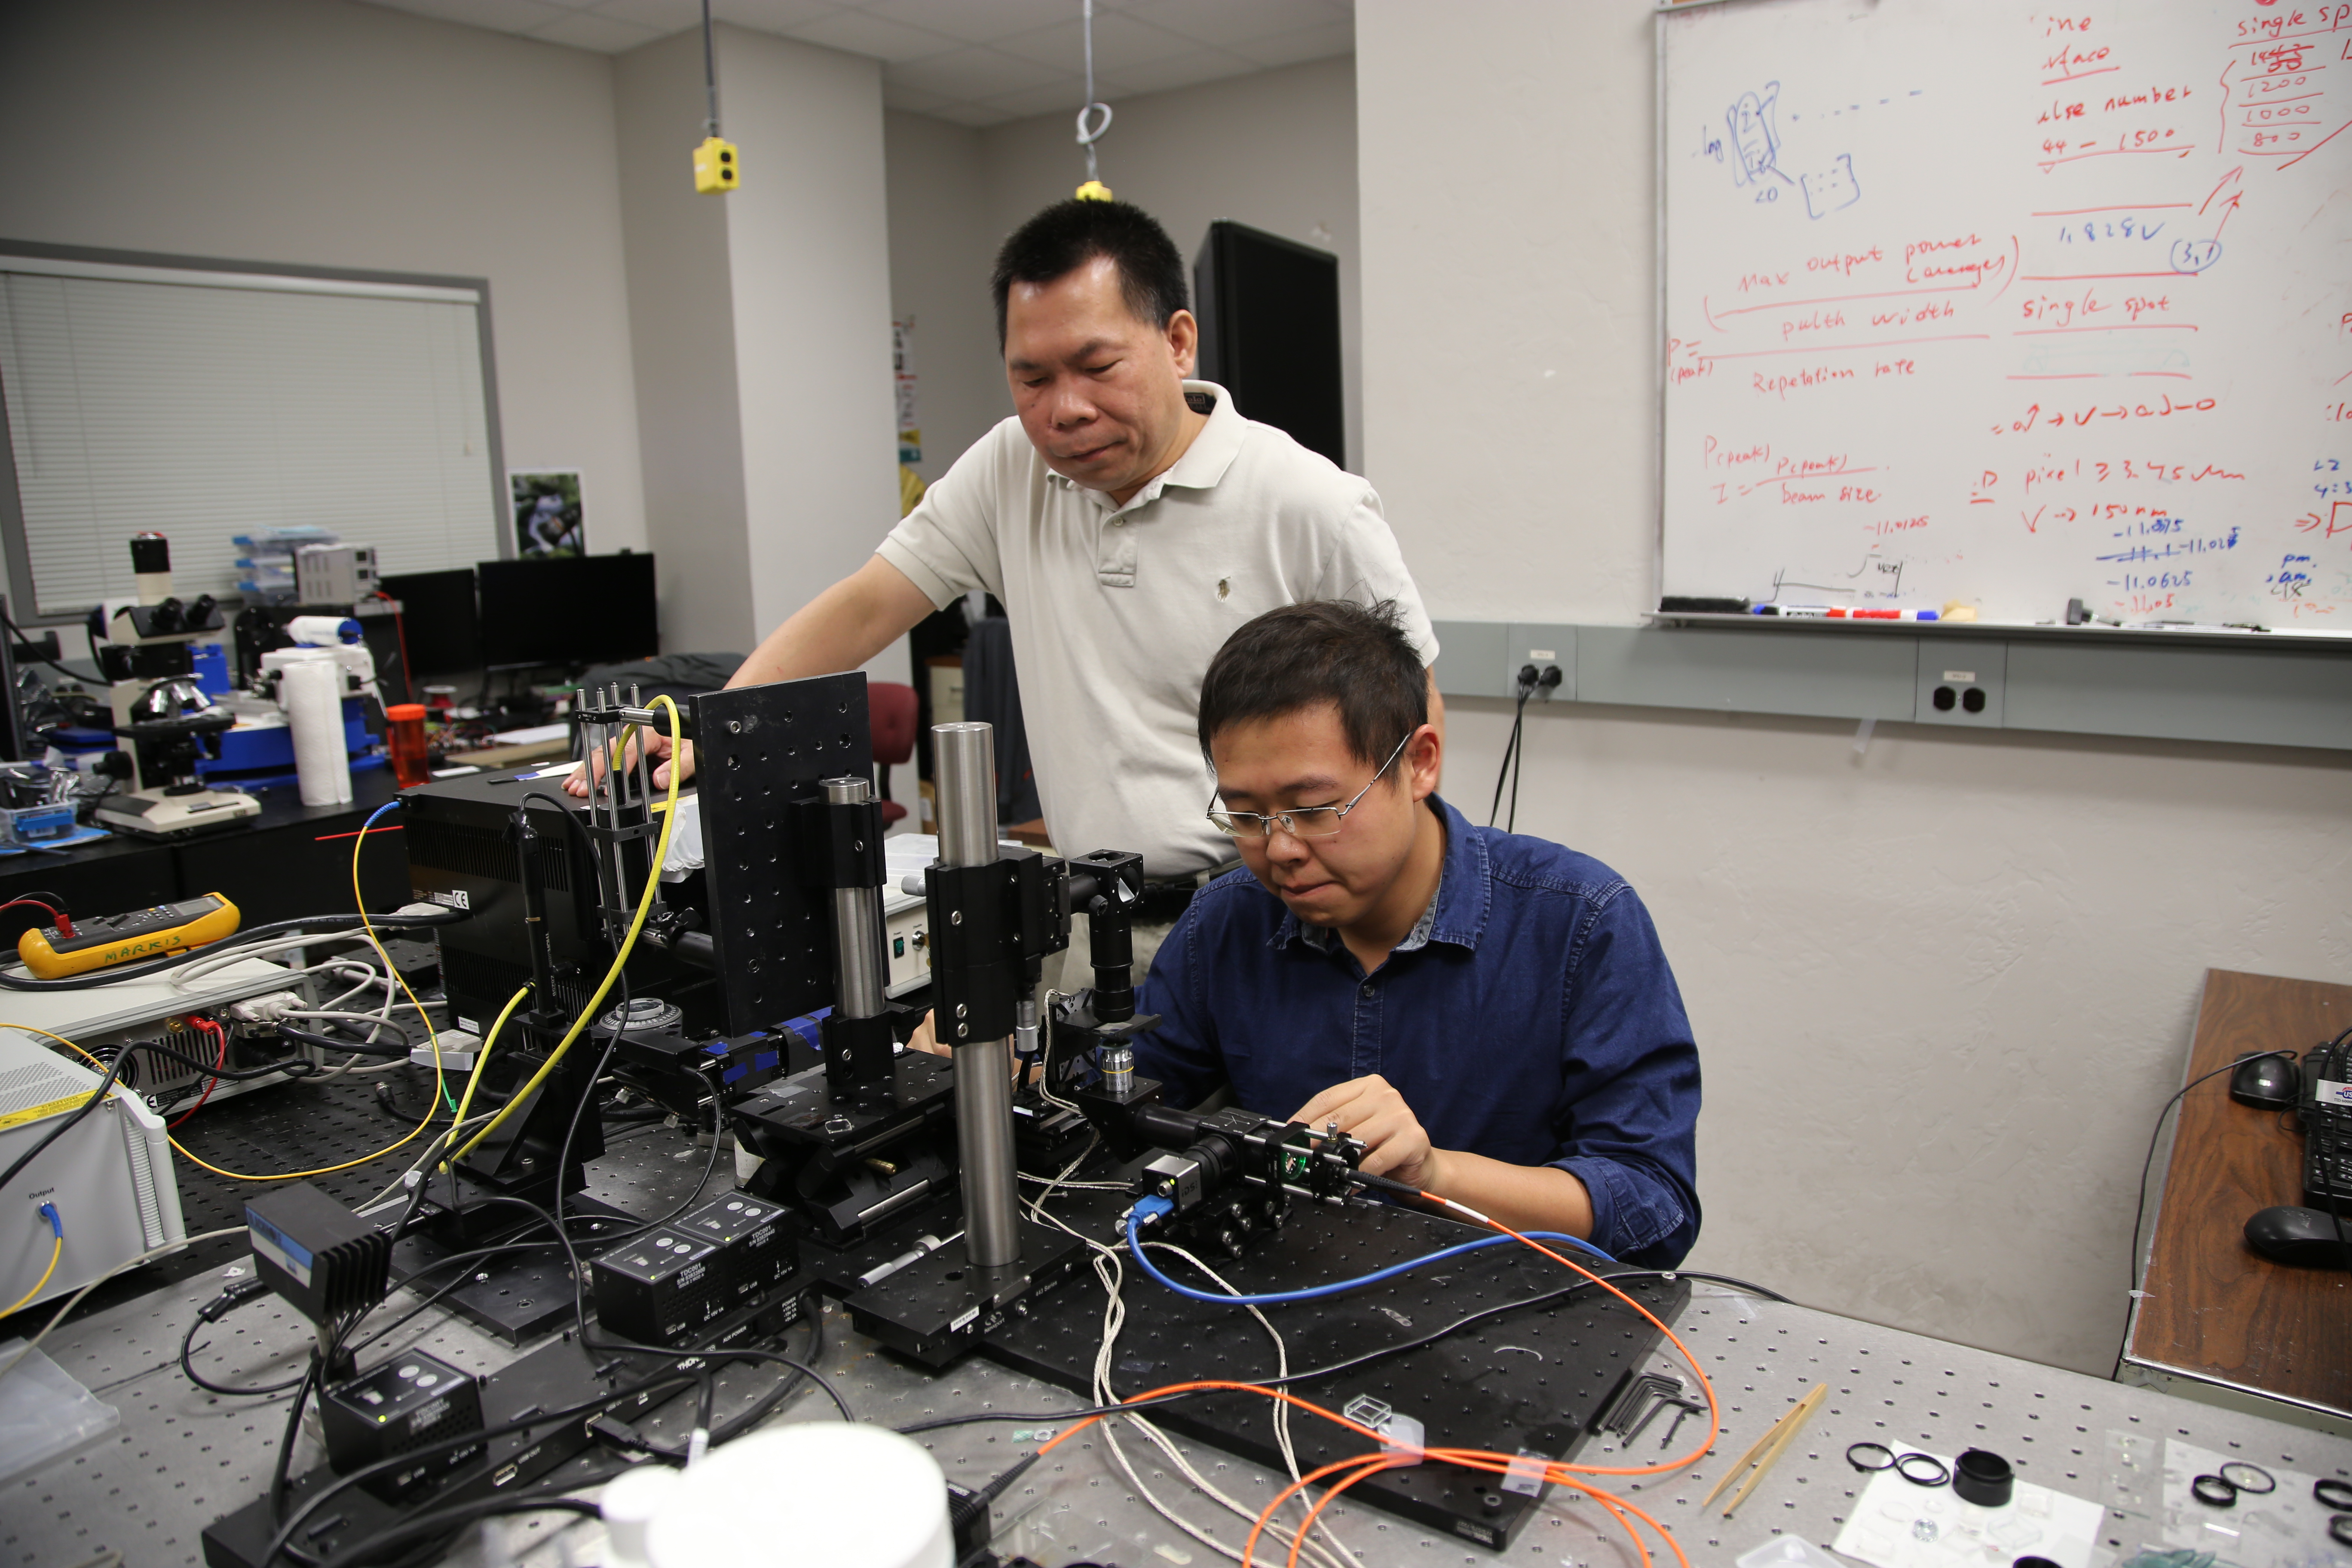 Rongguang Liang  of the College of Optical Sciences received funding to develop 3-D printing of freeform optics. He is shown here with graduate student and co-inventor Zhihan Hong.